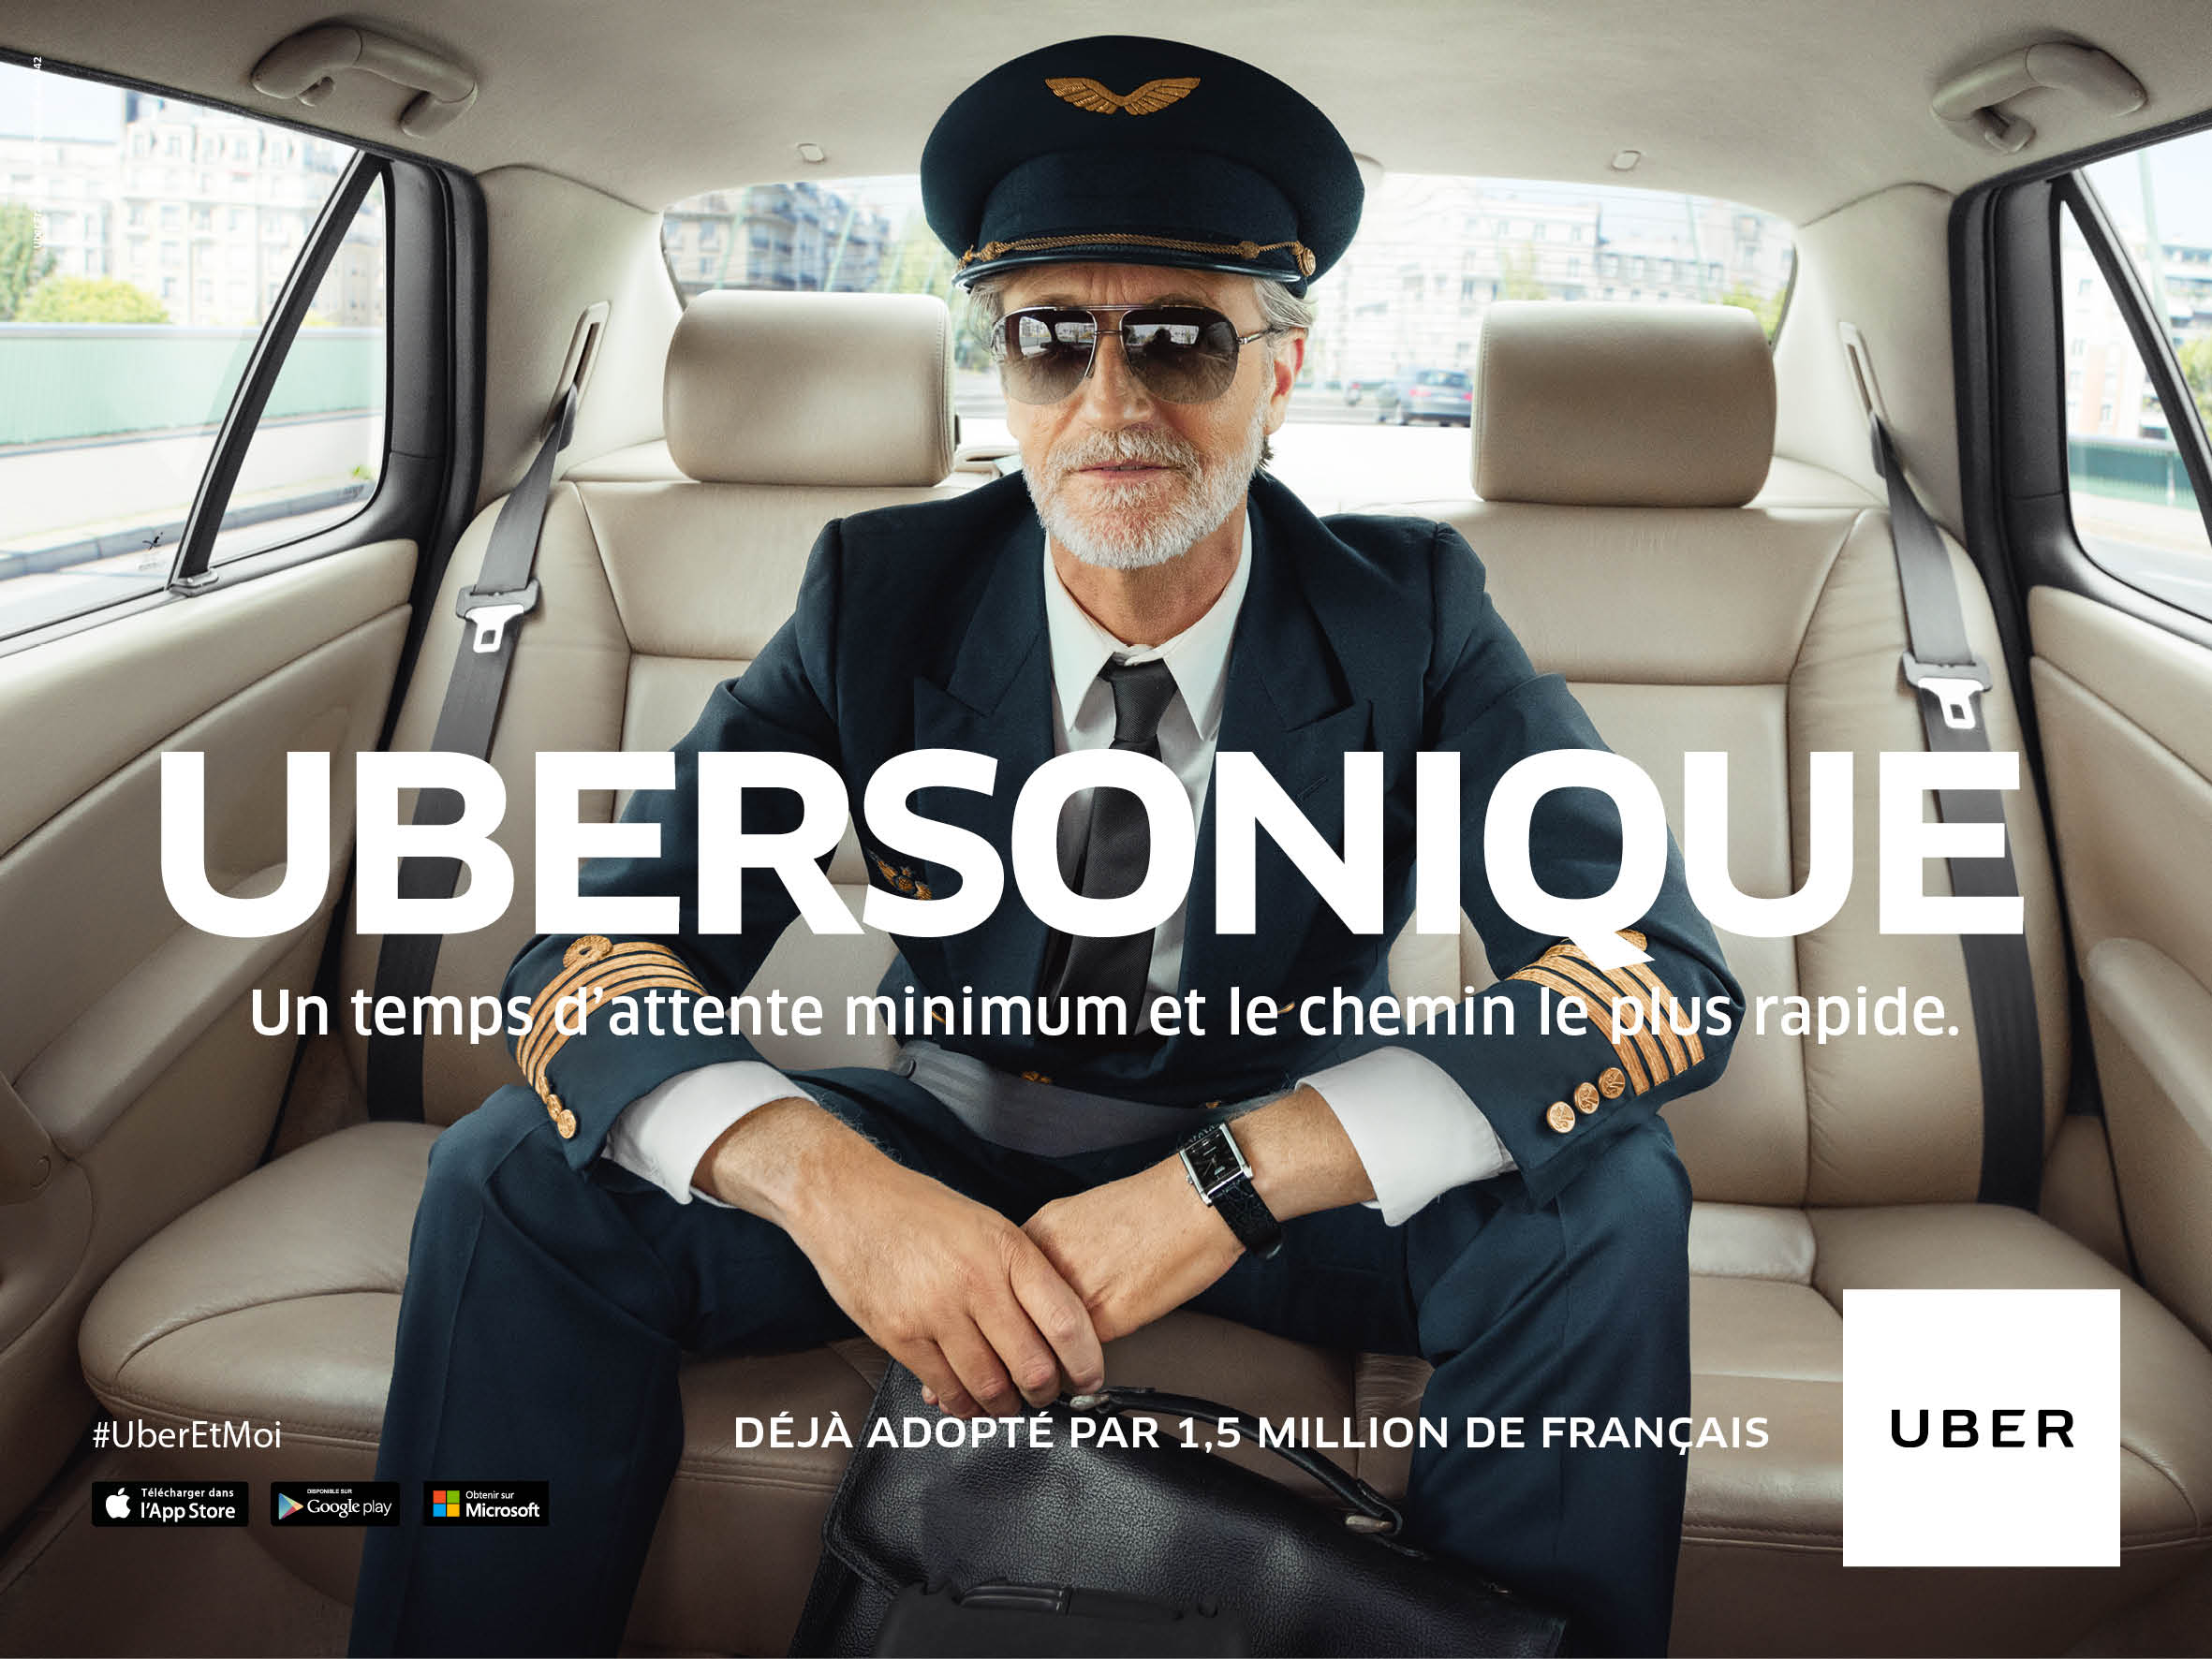 uber-france-publicite-marketing-application-utilisateurs-passagers-mars-2016-agence-marcel-publicis-6